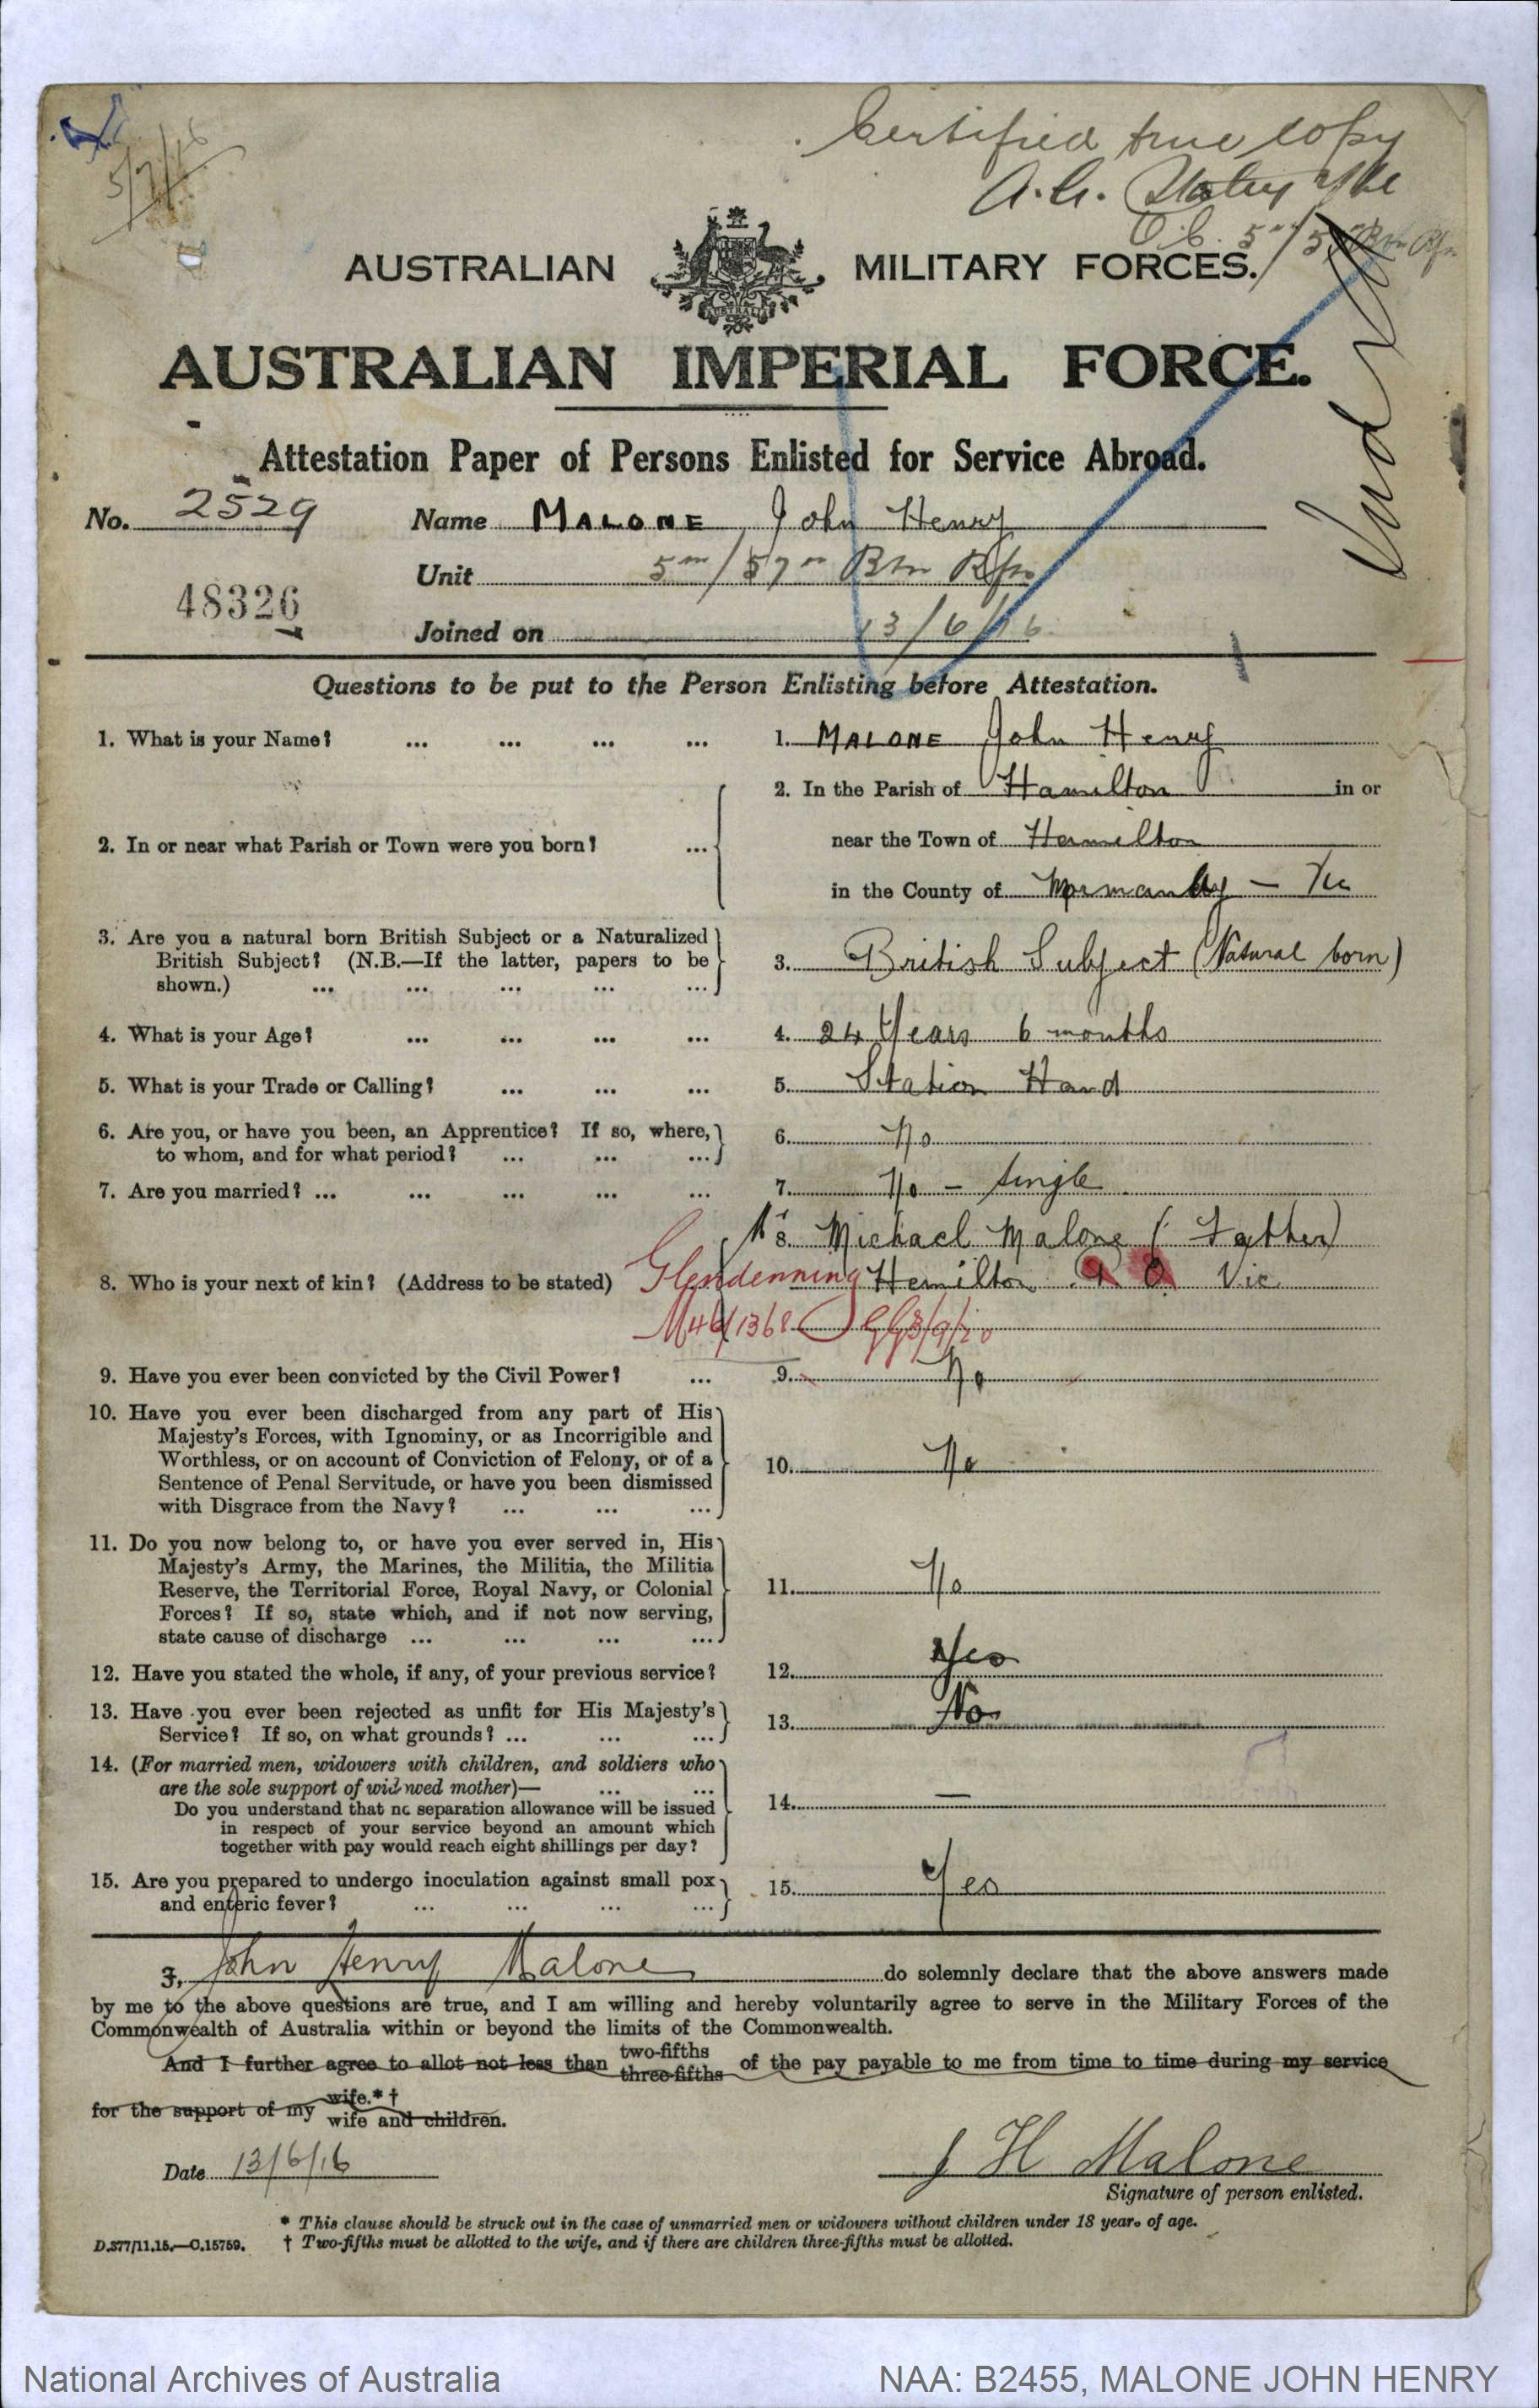 MALONE John Henry : Service Number - 2529 : Place of Birth - Hamilton VIC : Place of Enlistment - Hamilton VIC : Next of Kin - (Father) MALONE Michael